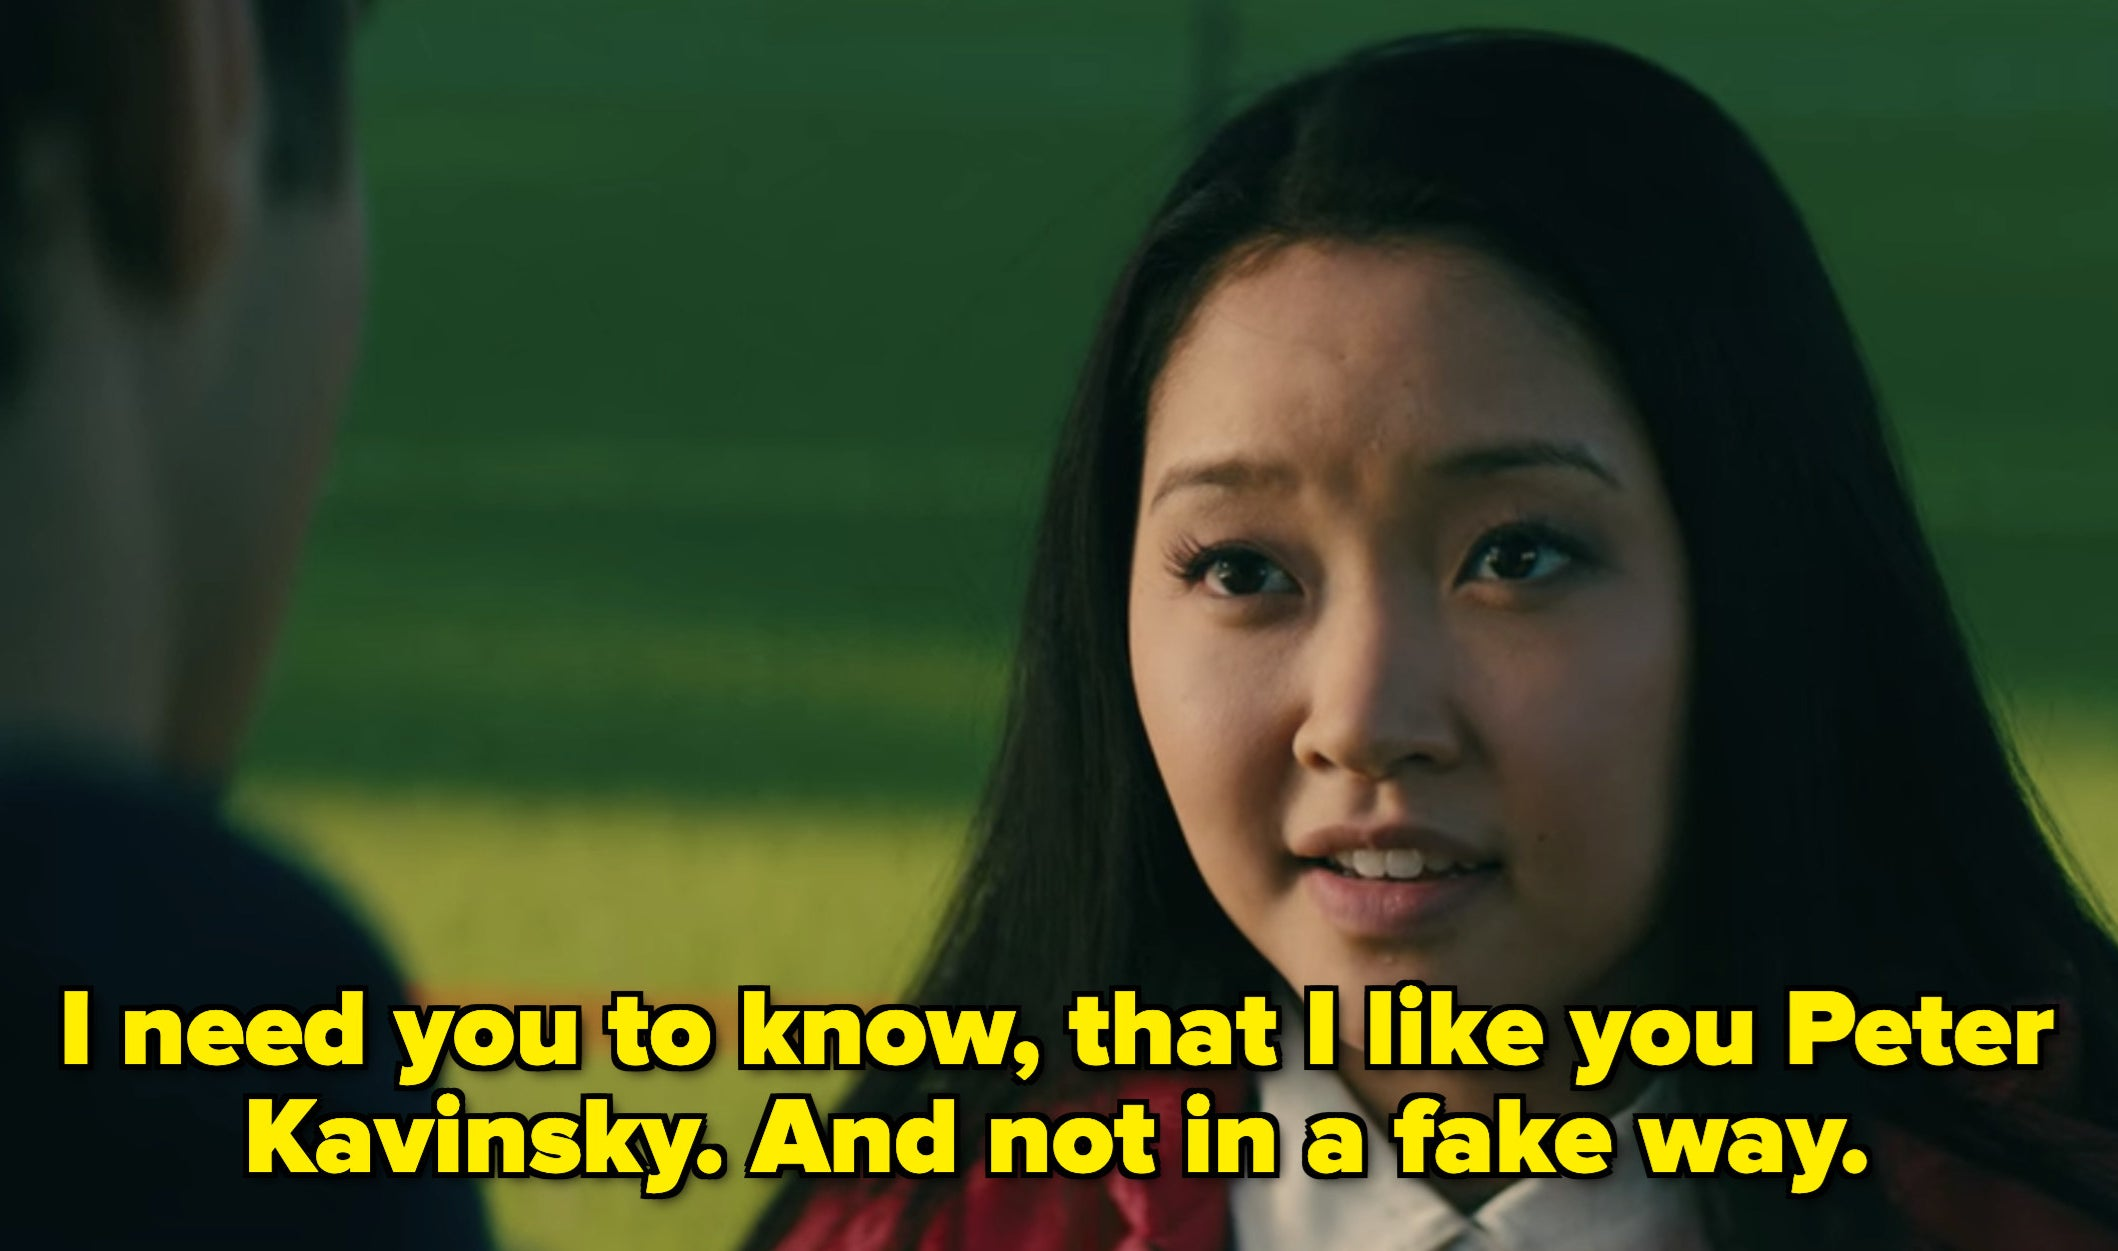 Lara Jean telling Peter that she likes him, and not in a fake way.